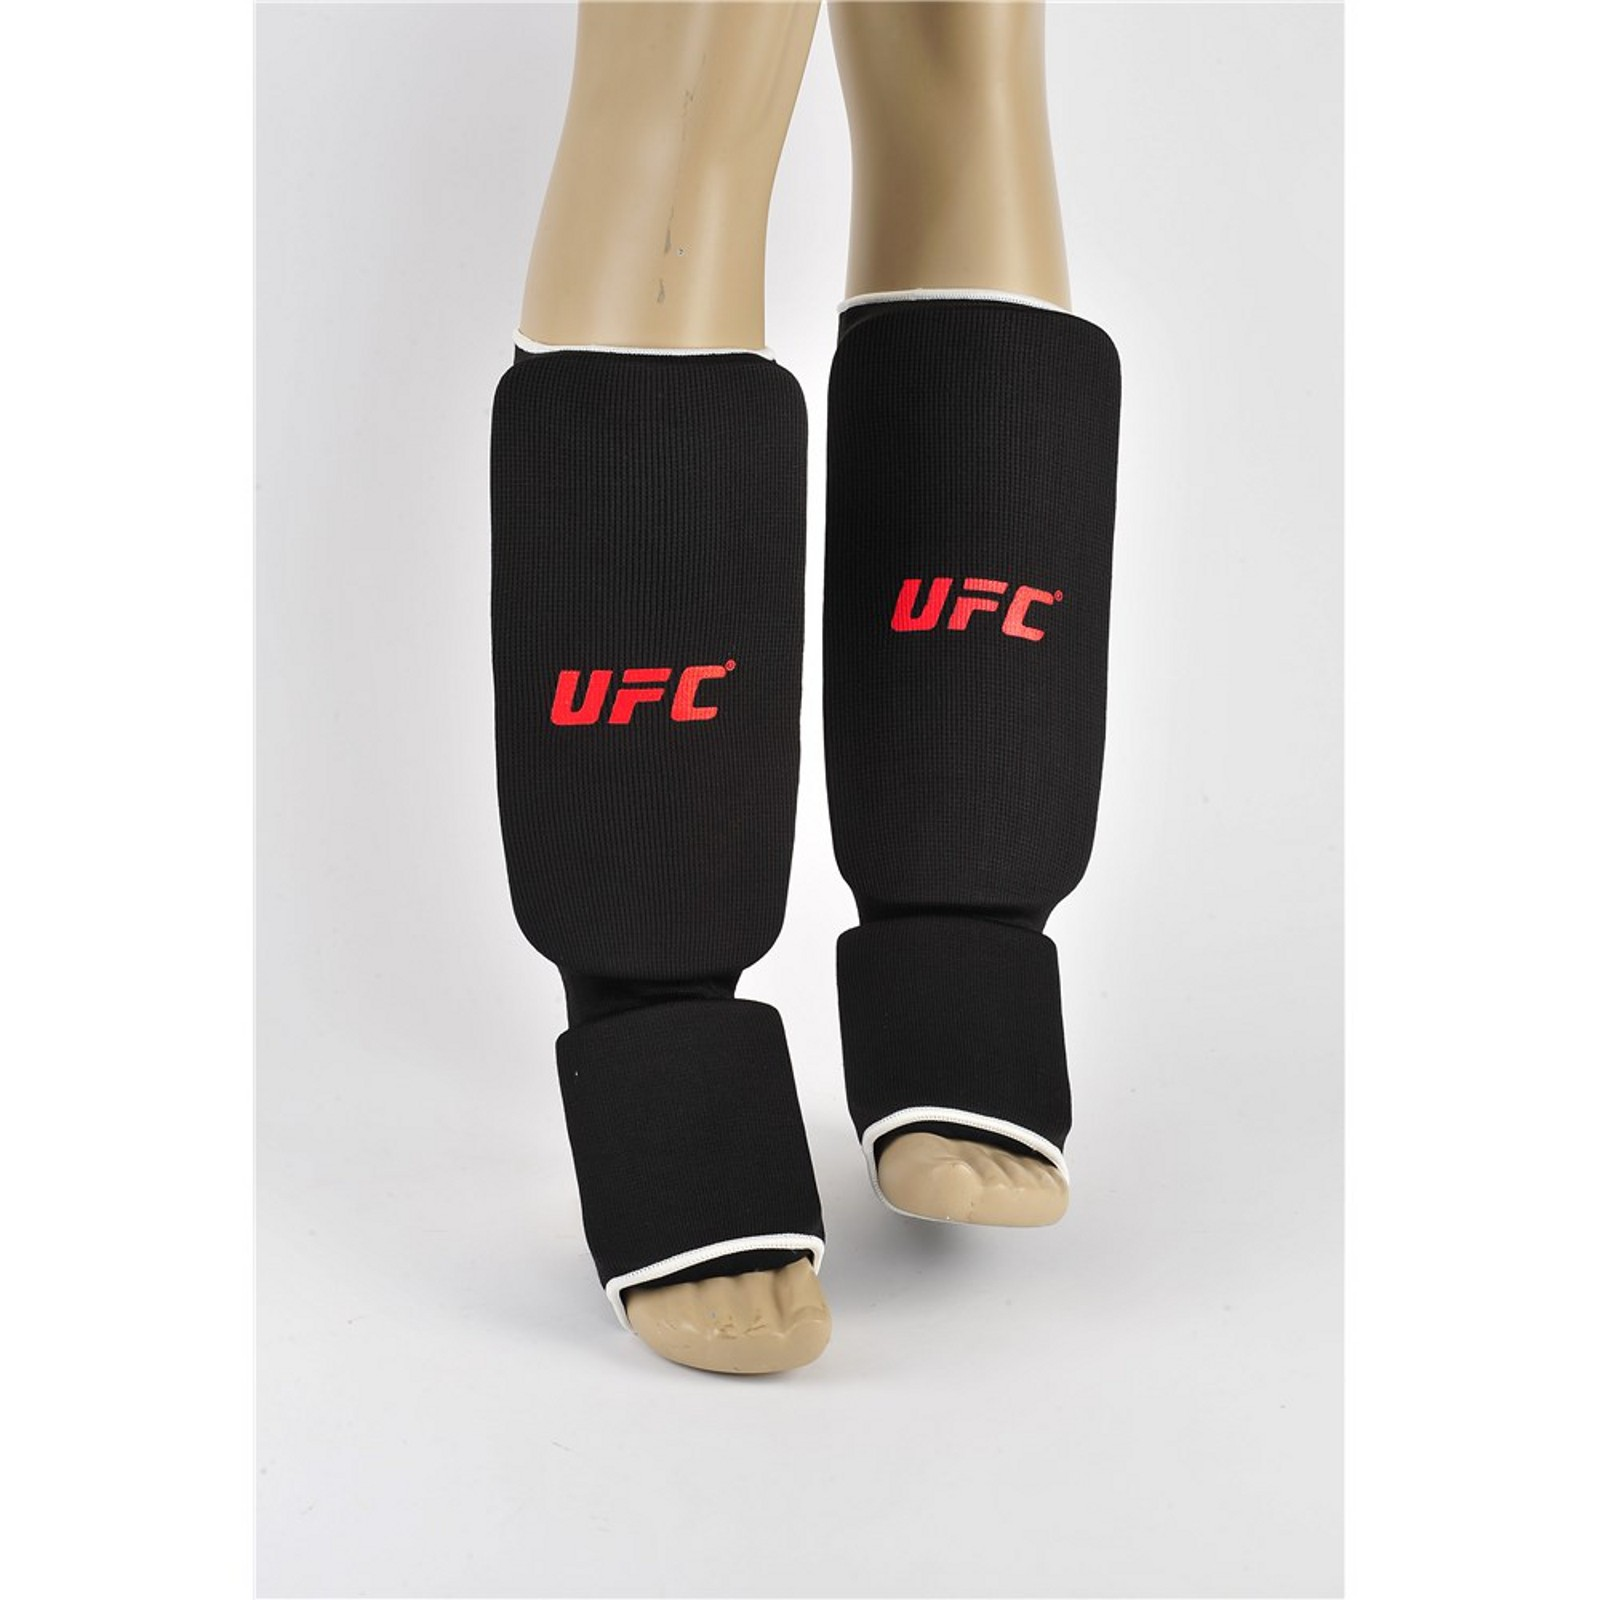 Ufc Feet Amp Shin Guards Europe S No 1 For Home Fitness